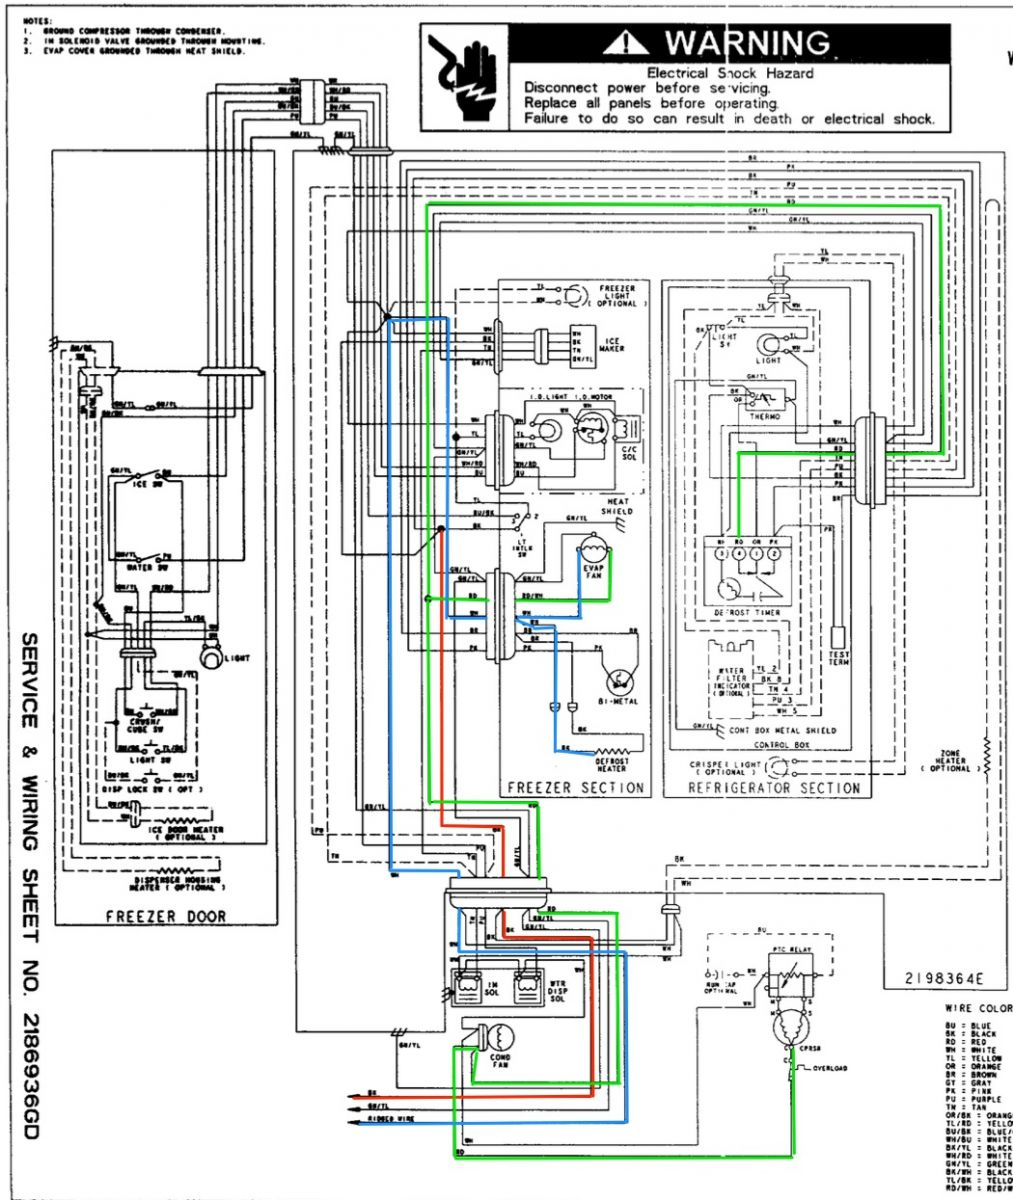 gallery_4_4_346879 whirlpool ed25rfxfw01 refrigerator wiring diagram the refrigerator wiring diagram at aneh.co